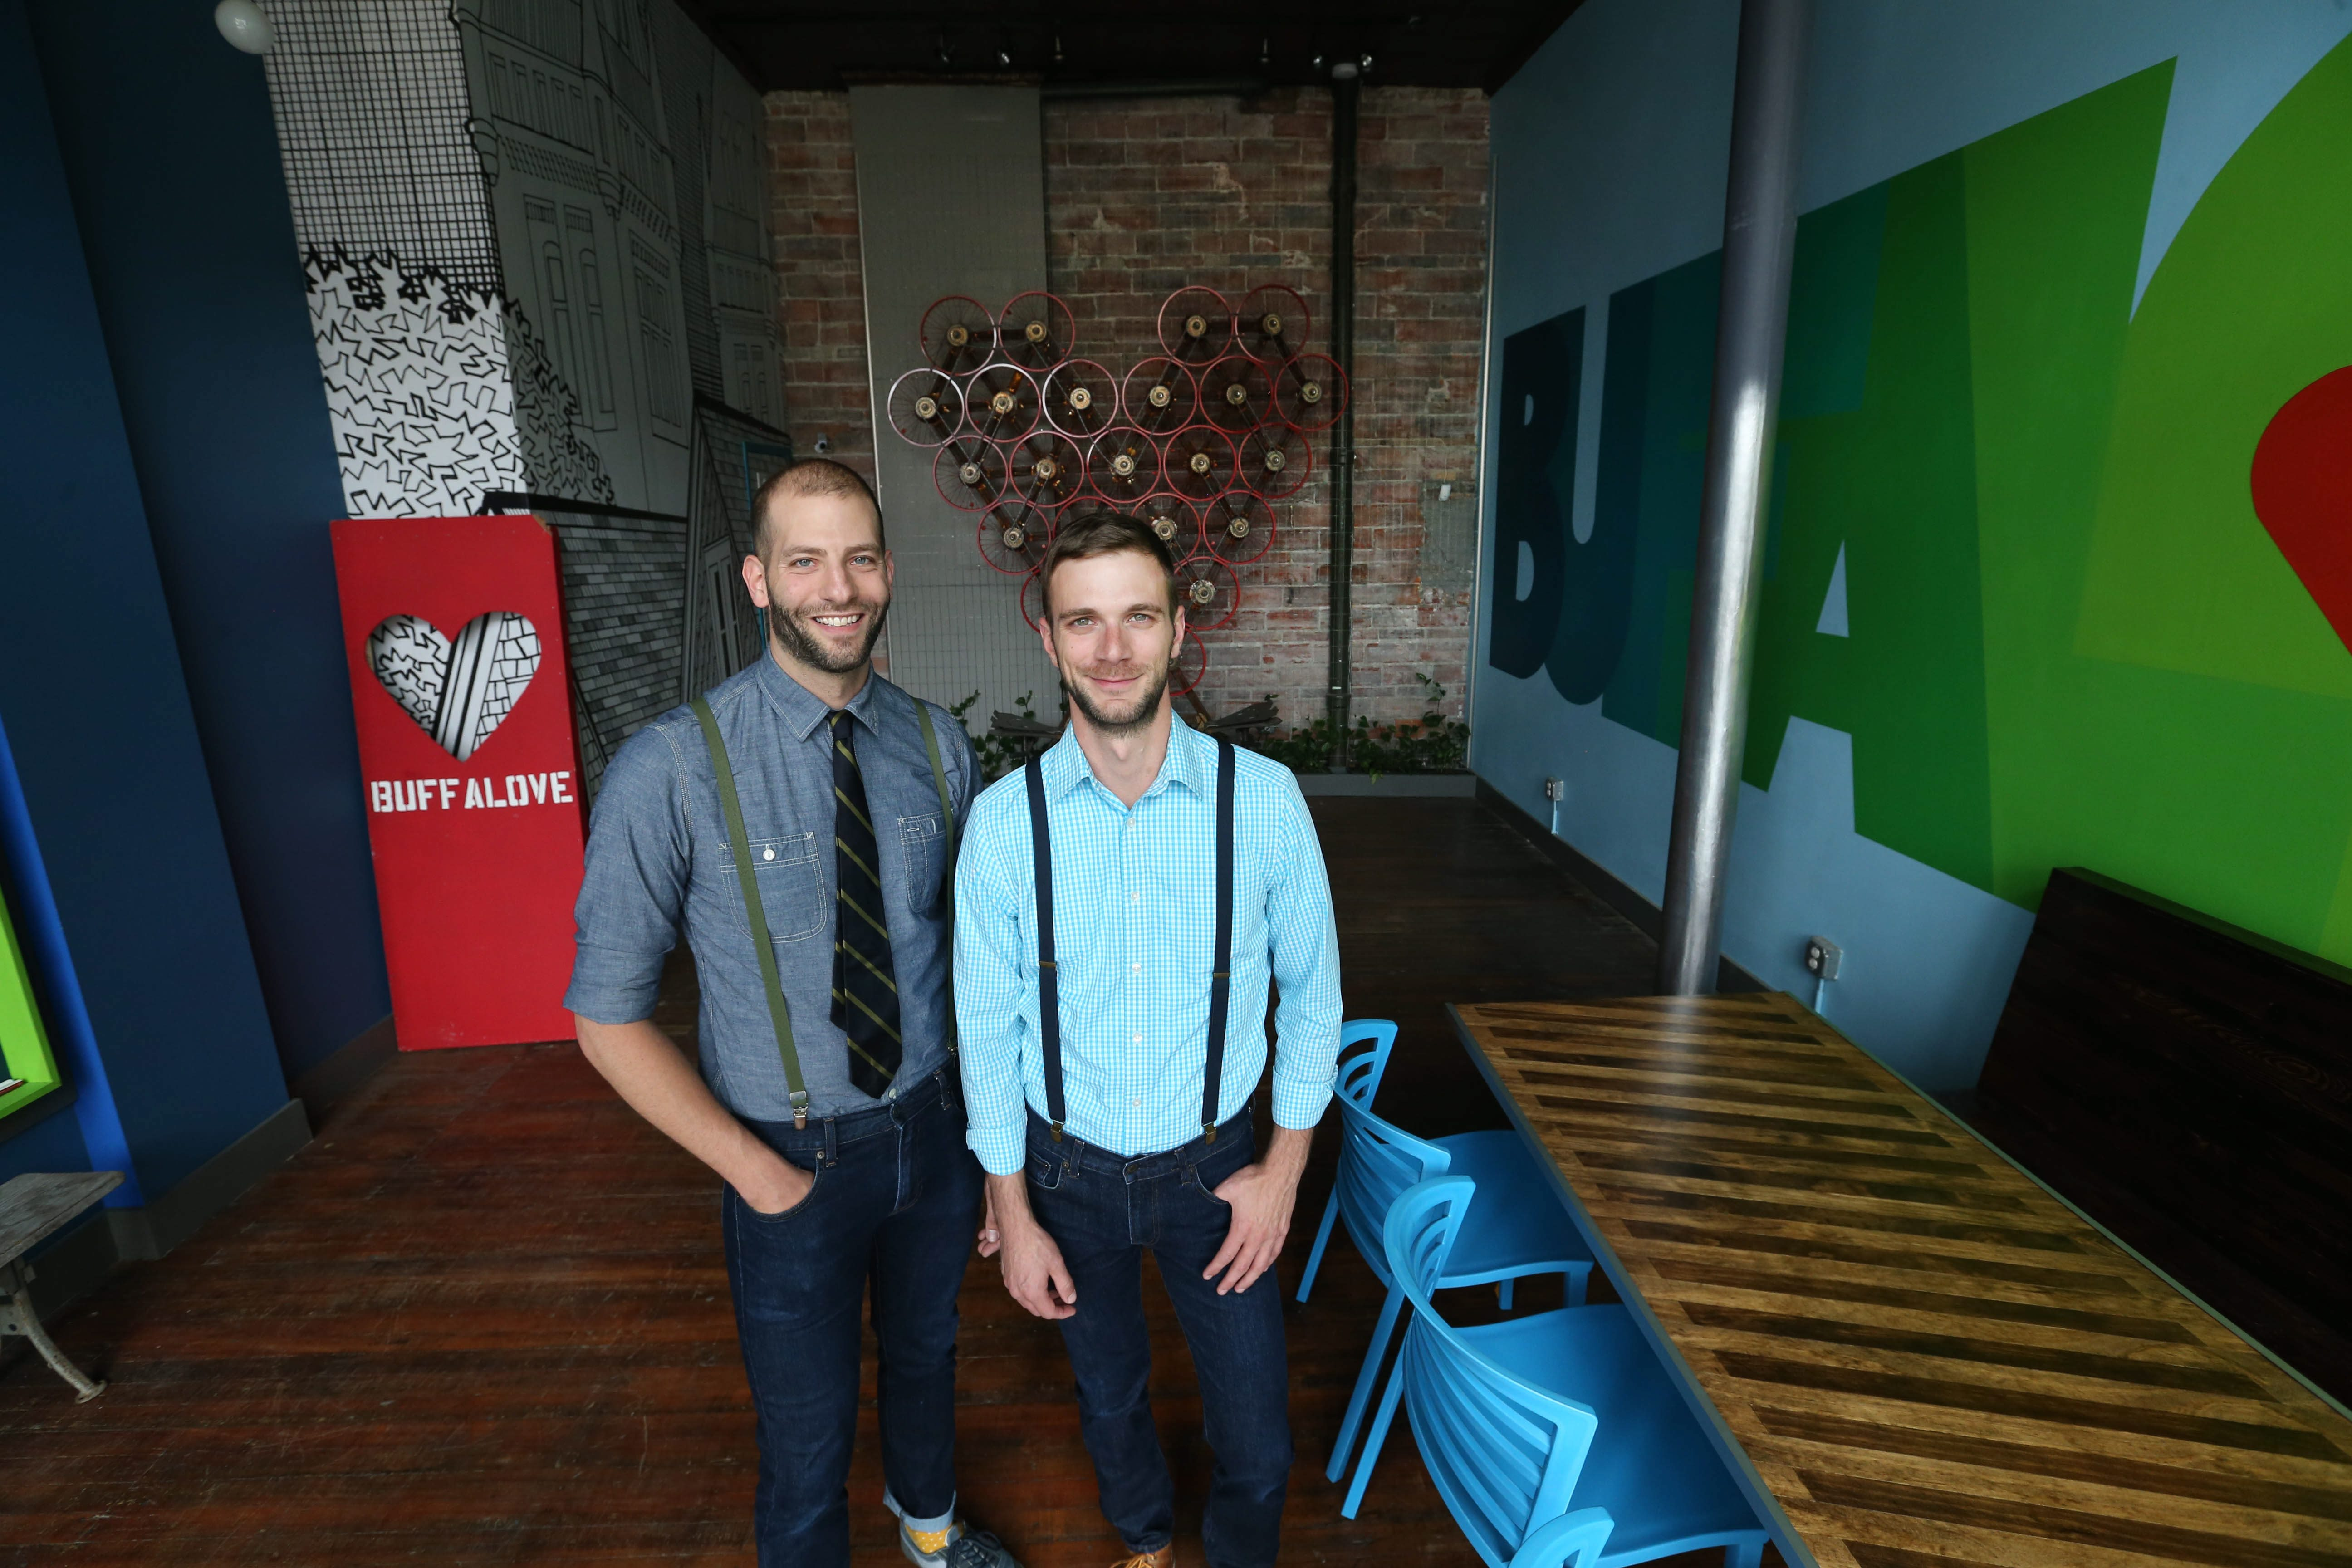 After nearly a year of planning, building and brainstorming, Casey Milbrand, left, and Jason Lloyd Clement are opening a community-based storefront at 218 Grant St. on Thursday.